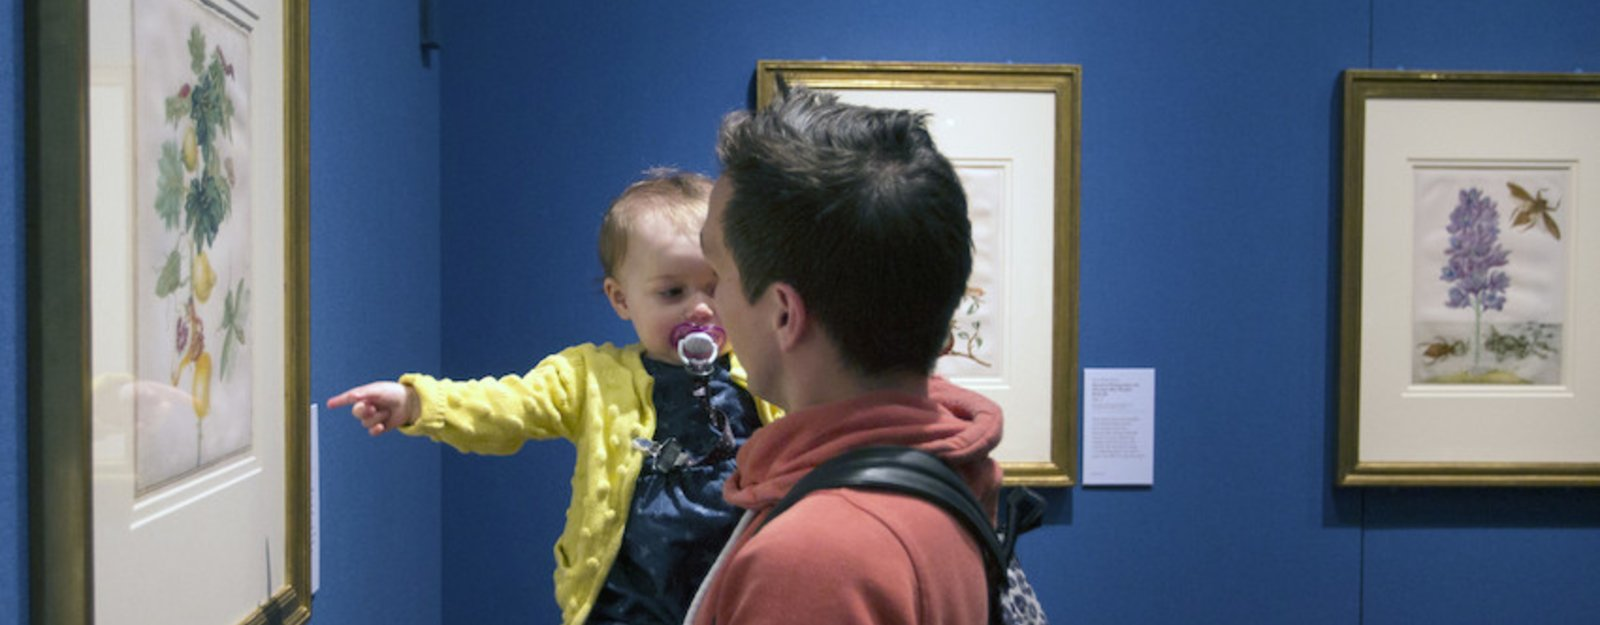 Man and a baby looking at a work of art